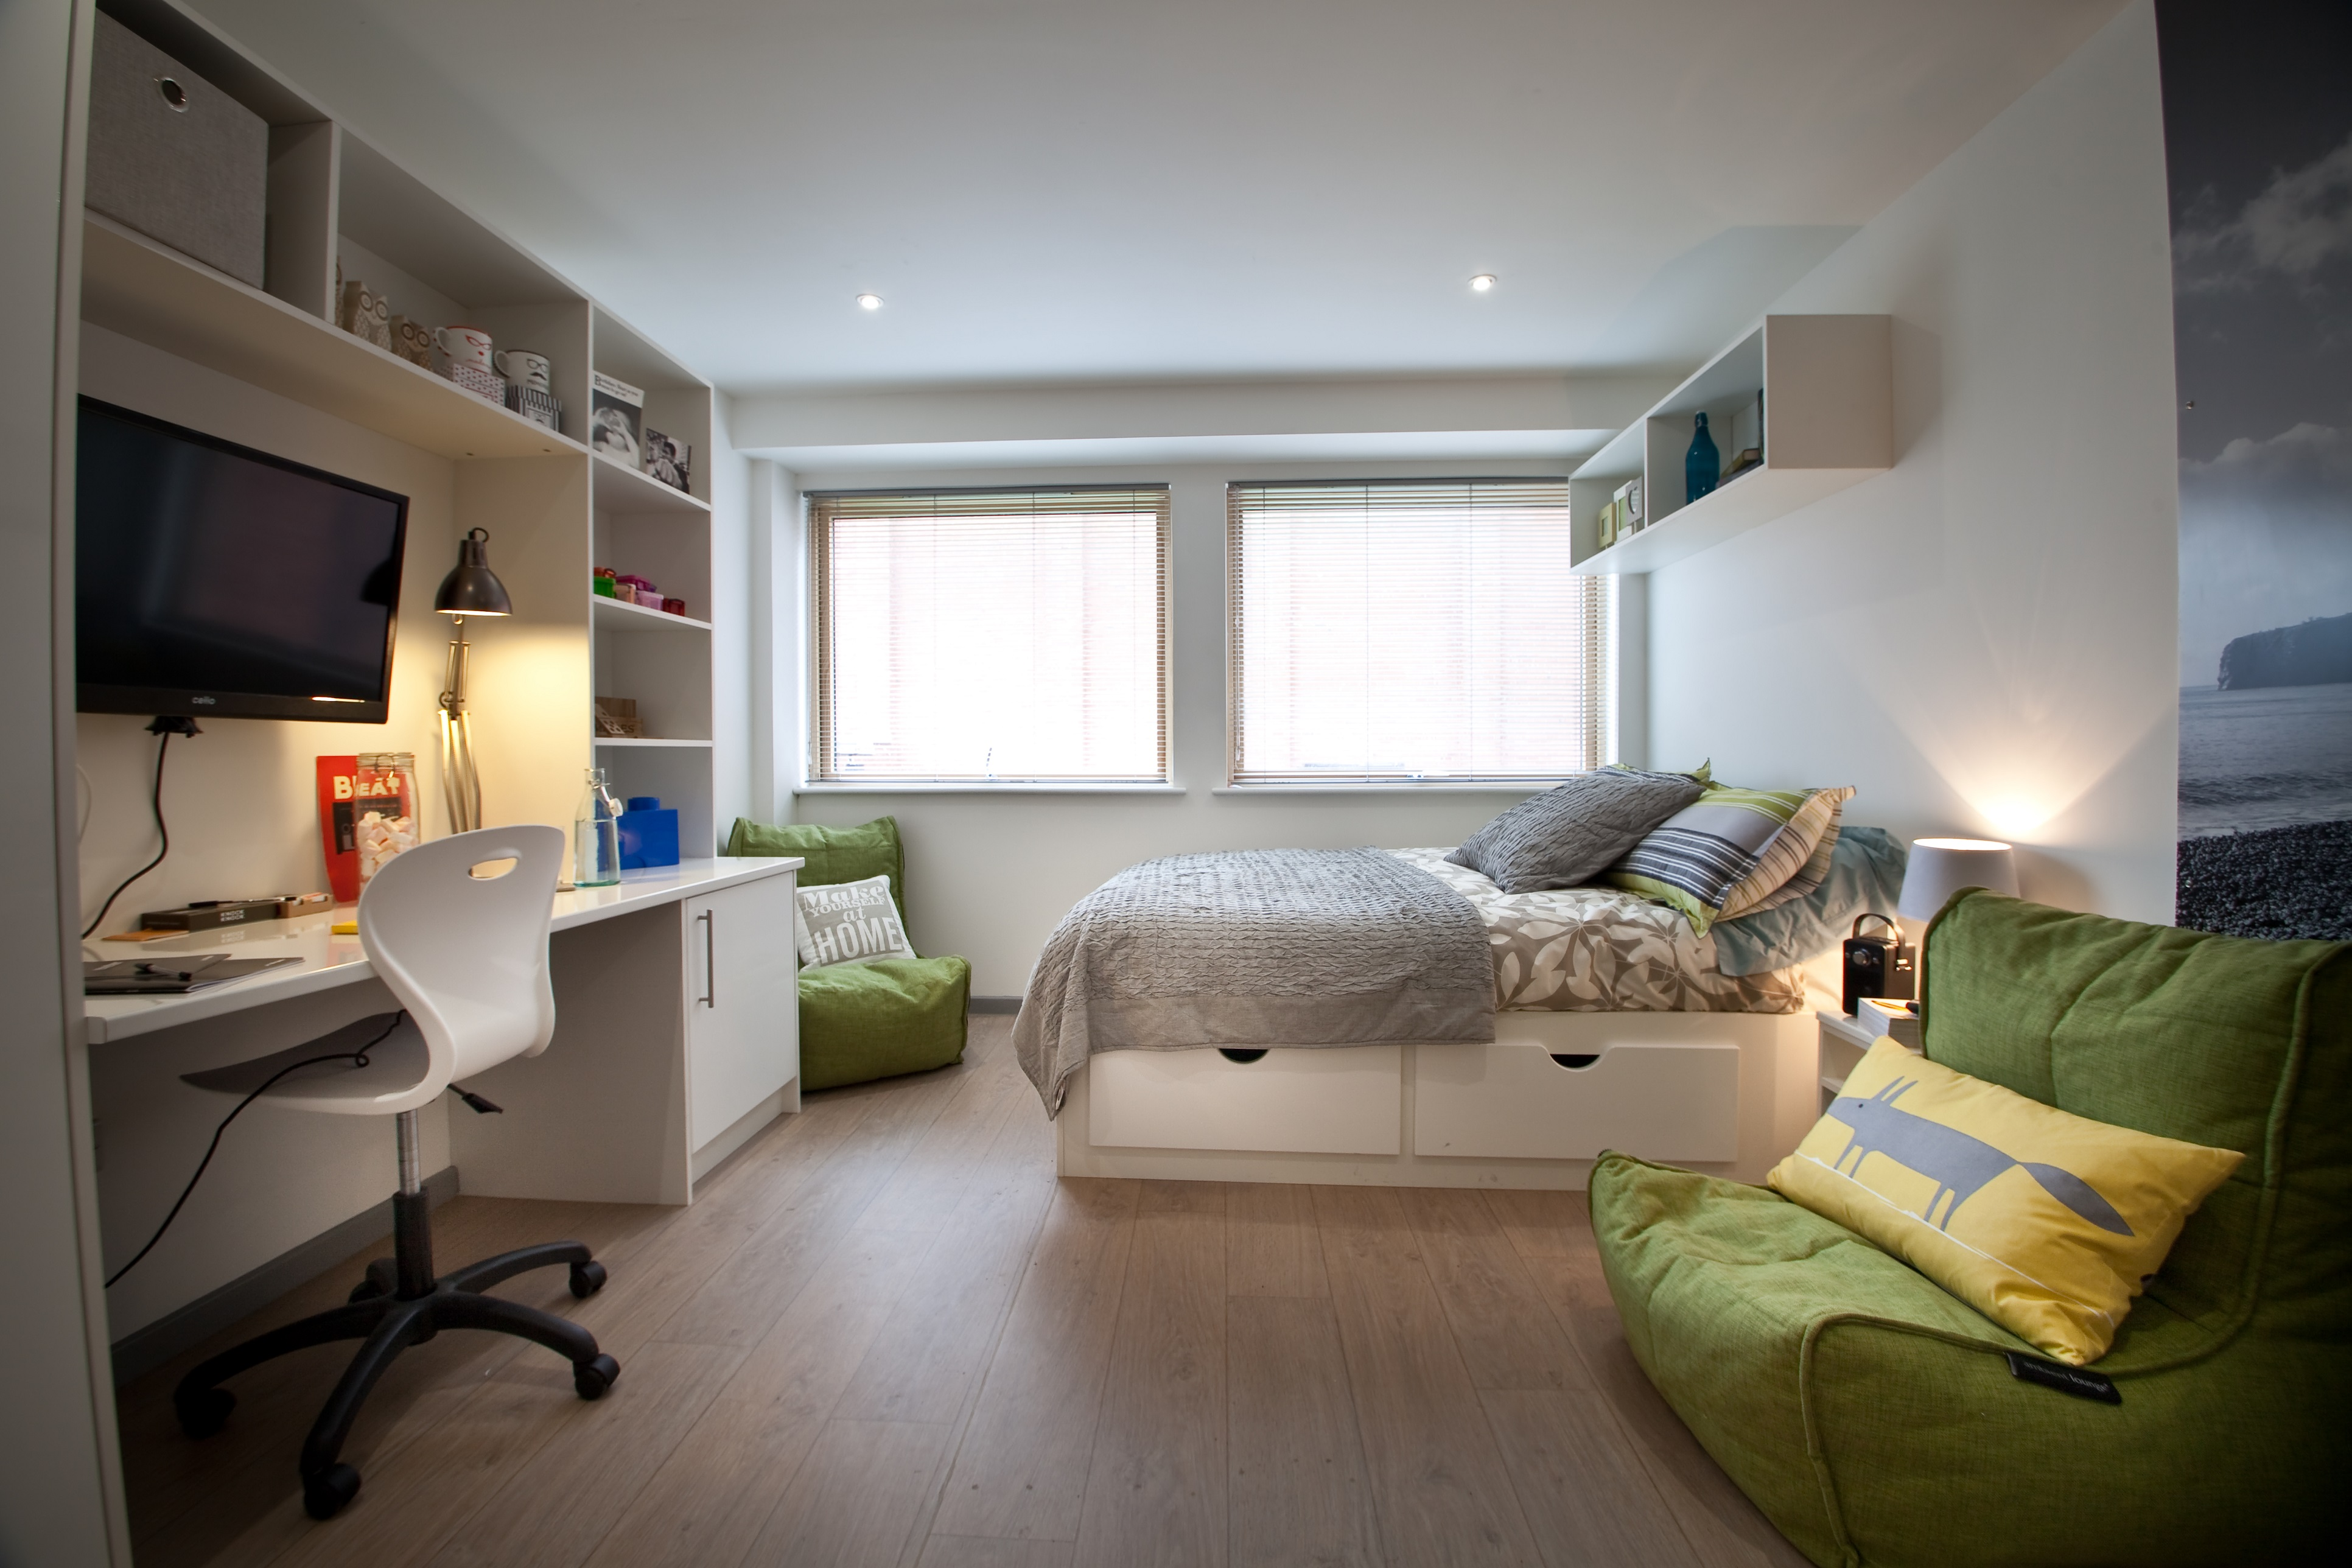 Private Rooms To Rent In Gloucester